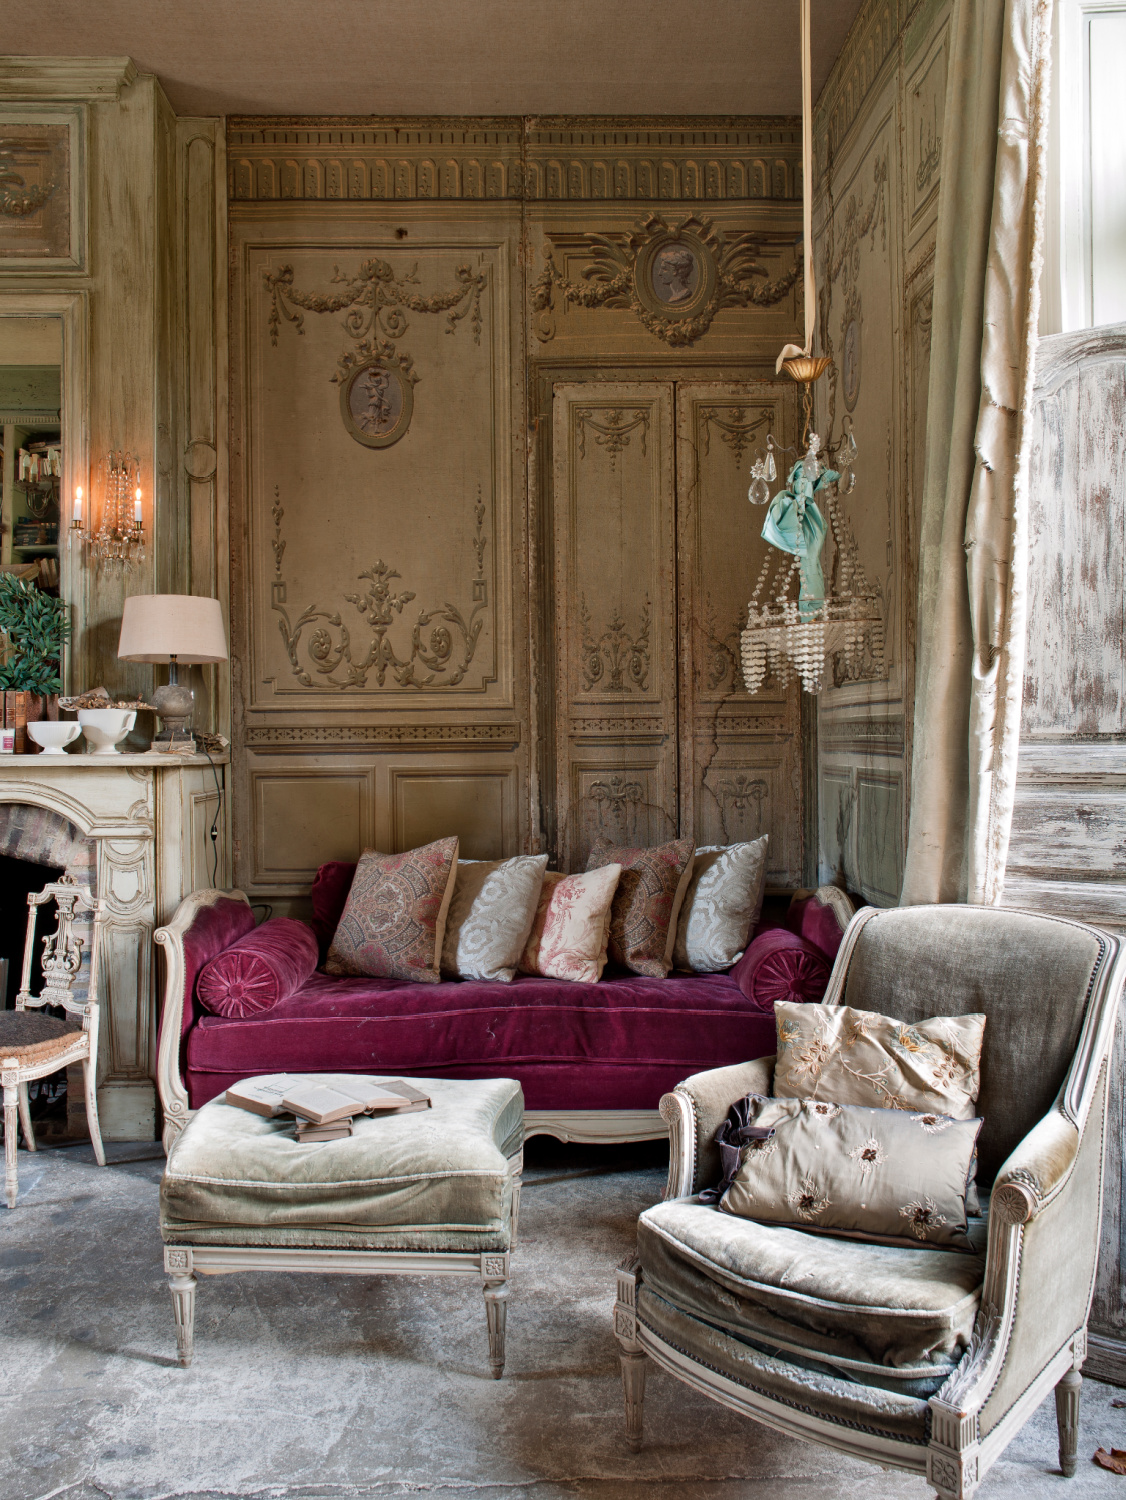 A traditional sitting room with painted walls and, unusually, a concrete floor. A sofa with a maroon red cushion stands in one corner. Featured in Shauna Varvel's PROVENCE STYLE. #interiordesign #frenchcountry #oldworldstyle #velvet